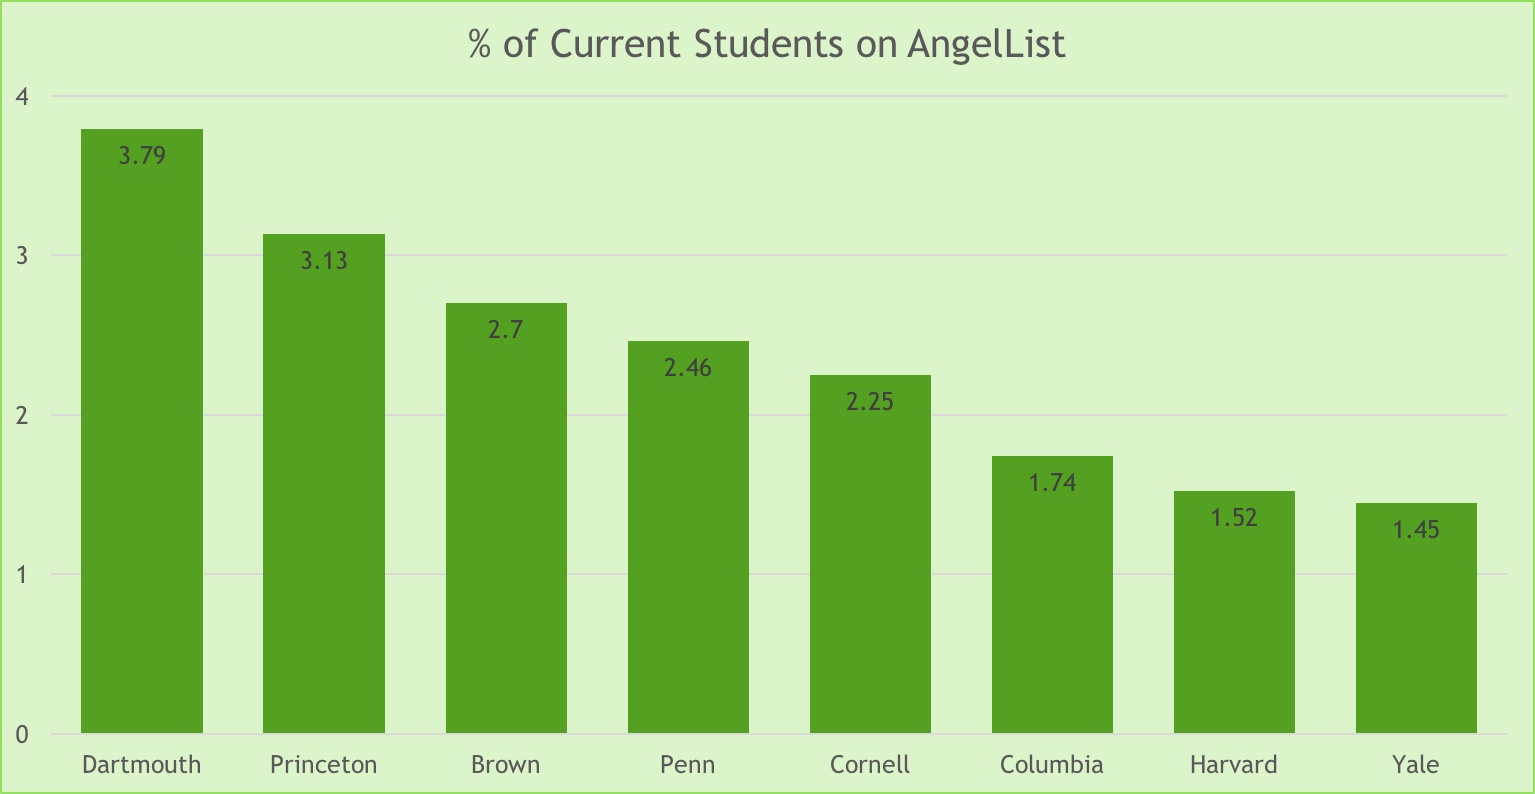 Only Stanford (4.36%) and CMU (3.86%) have a higher percentage of current students, graduate and undergraduate, on AngelList than Dartmouth, among PitchBook's top 25.